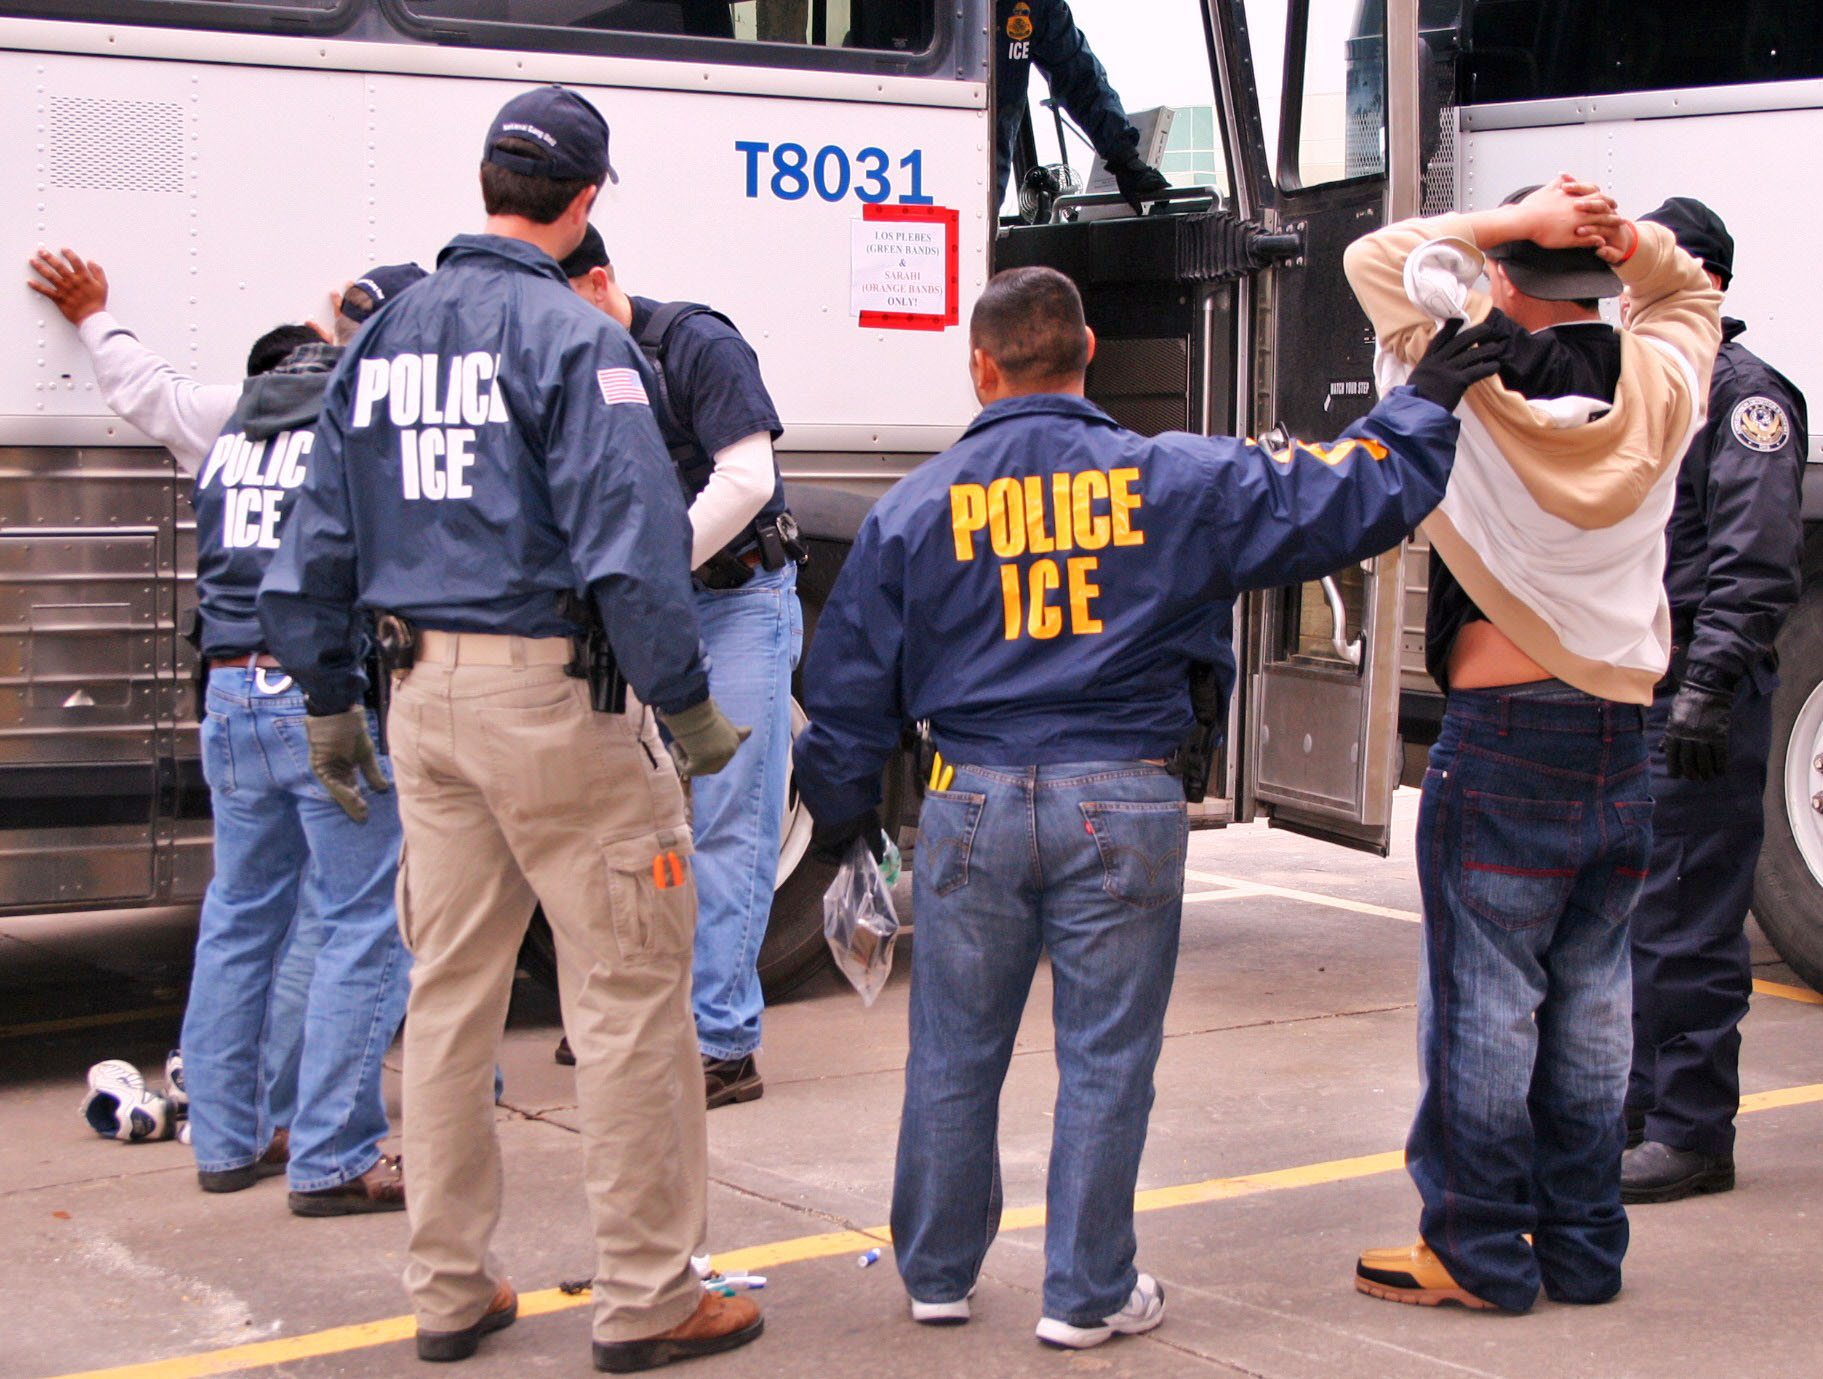 ICE Special Agents (U.S. Immigration and Customs Enforcement) arresting suspects during a raid. Houston, 2010. Photo Courtesy of ICE